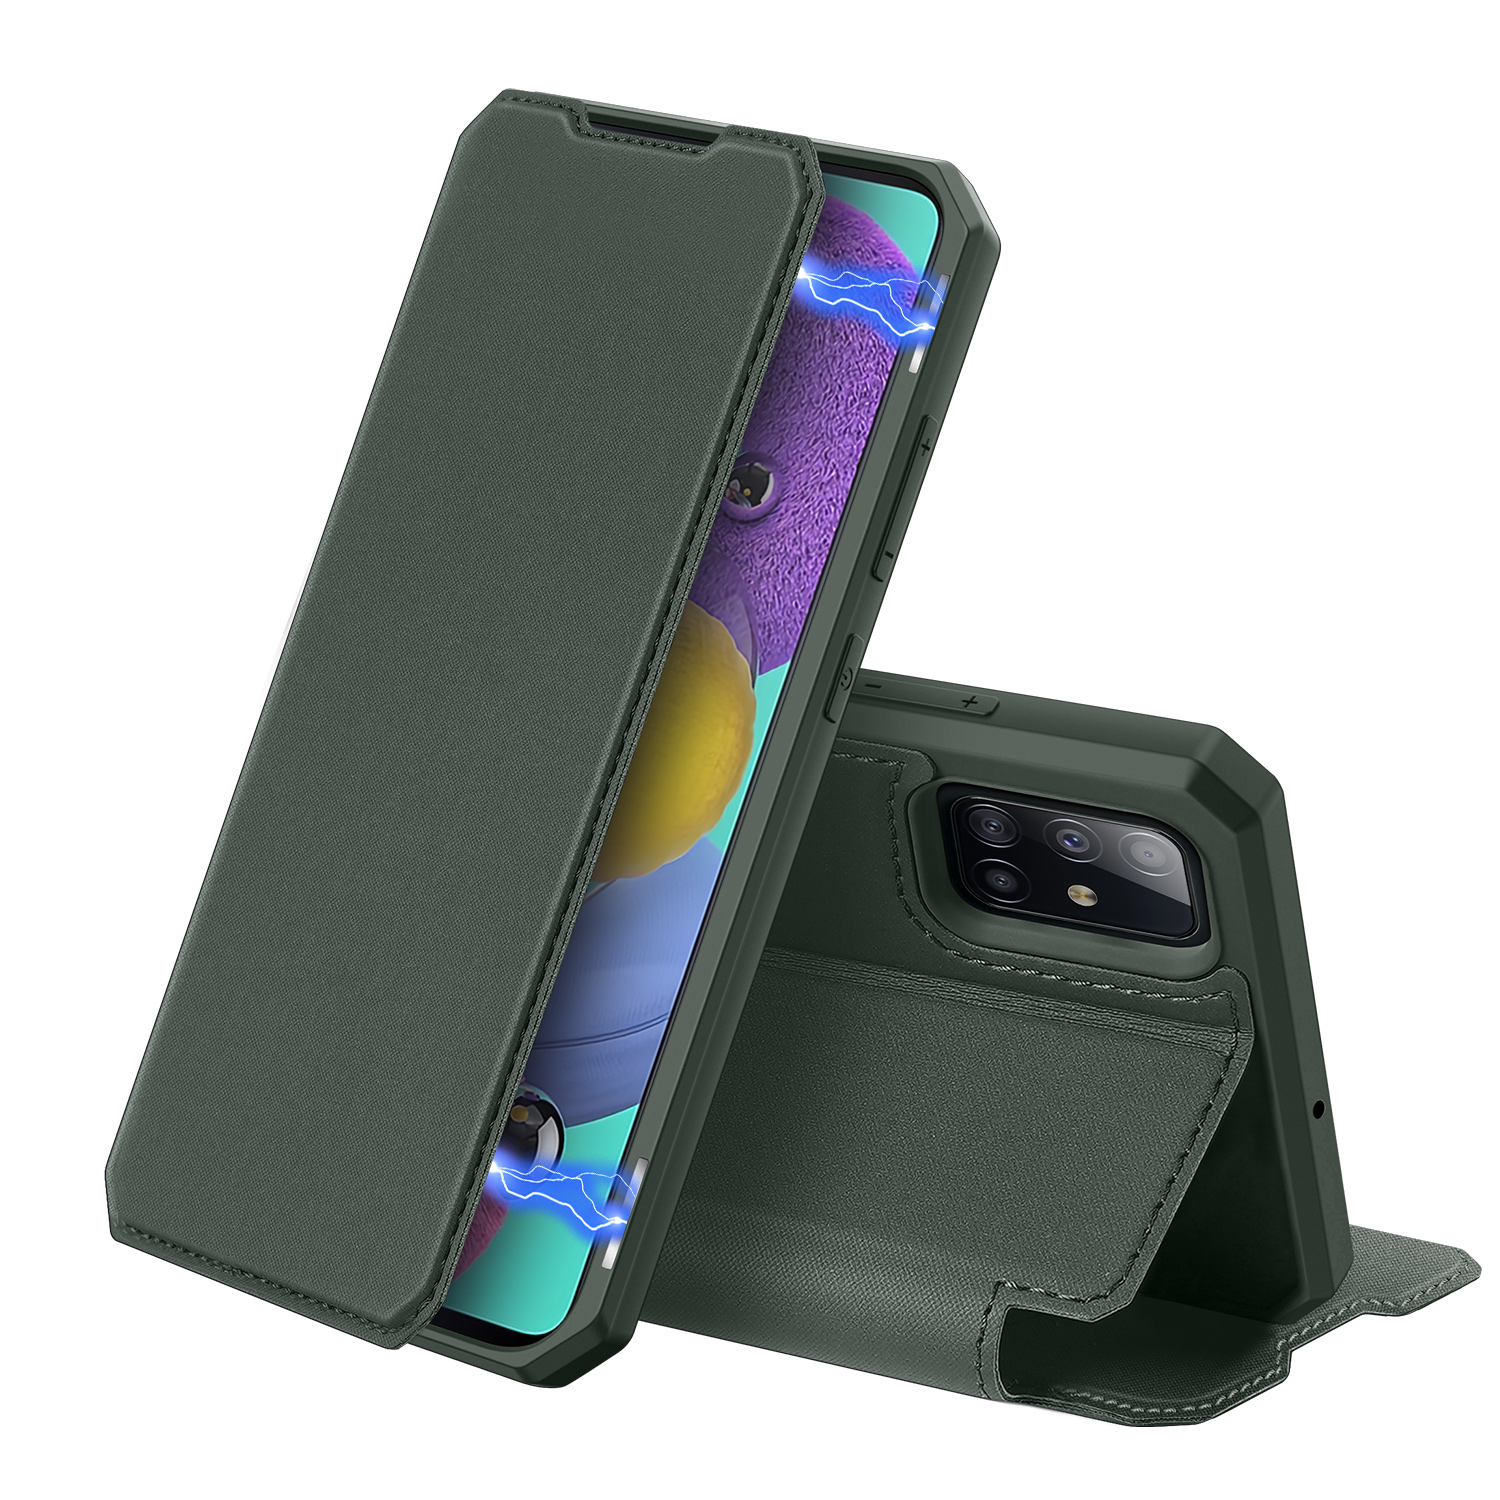 DUX DUCIS For Samsung A51 Leather Mobile Phone Cover Magnetic Protective Case Bracket with Card Slot Dark green